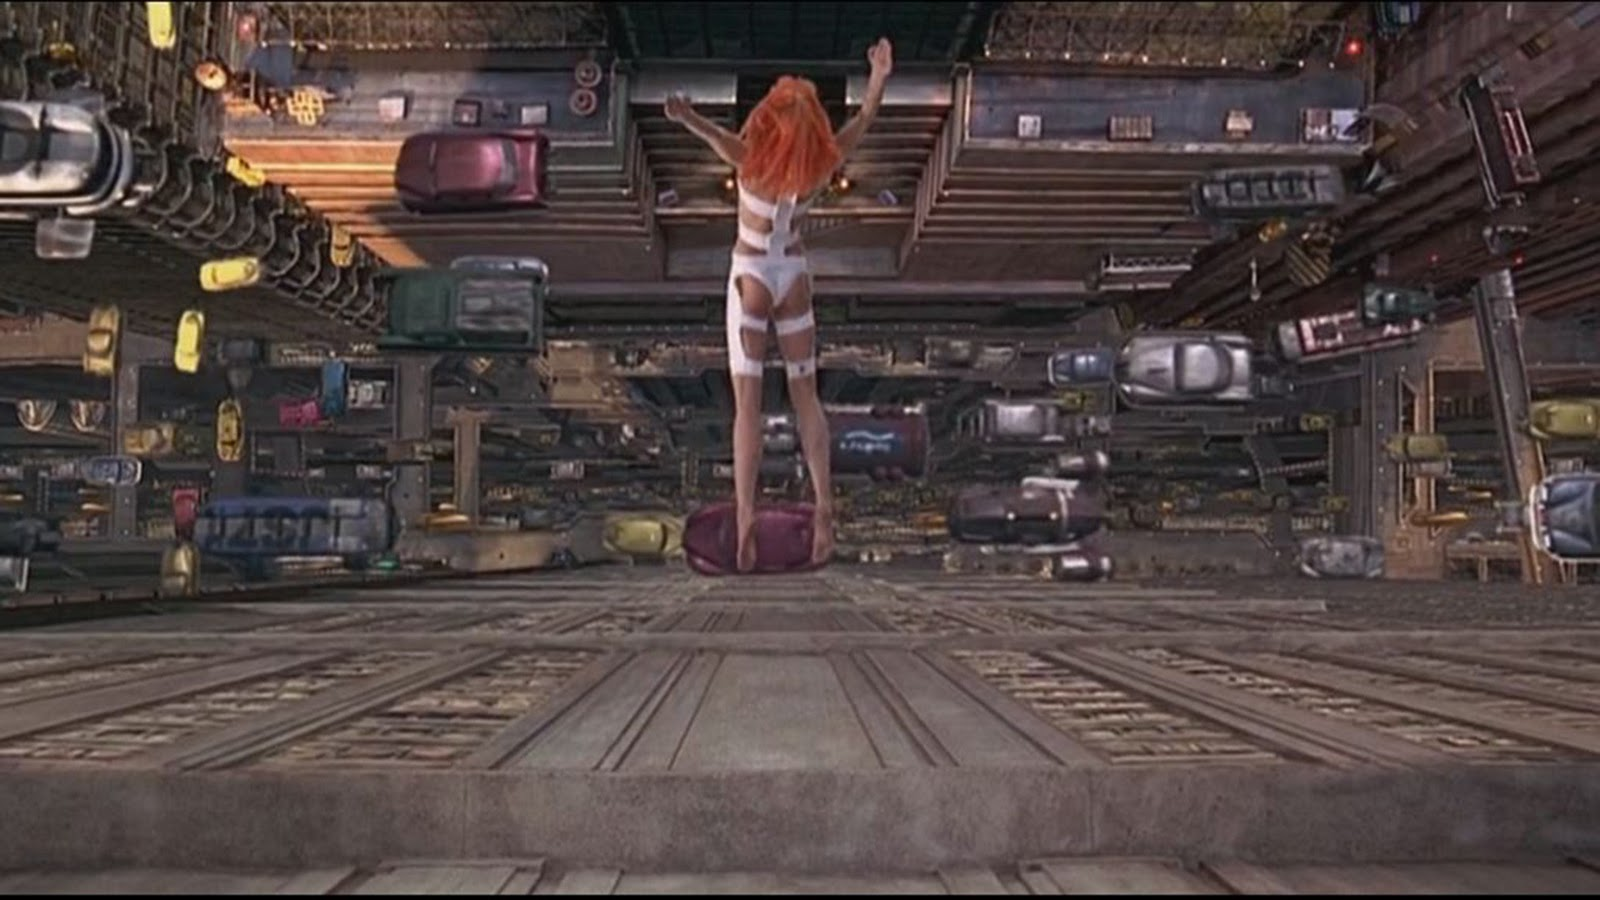 The Fifth Element: Plot